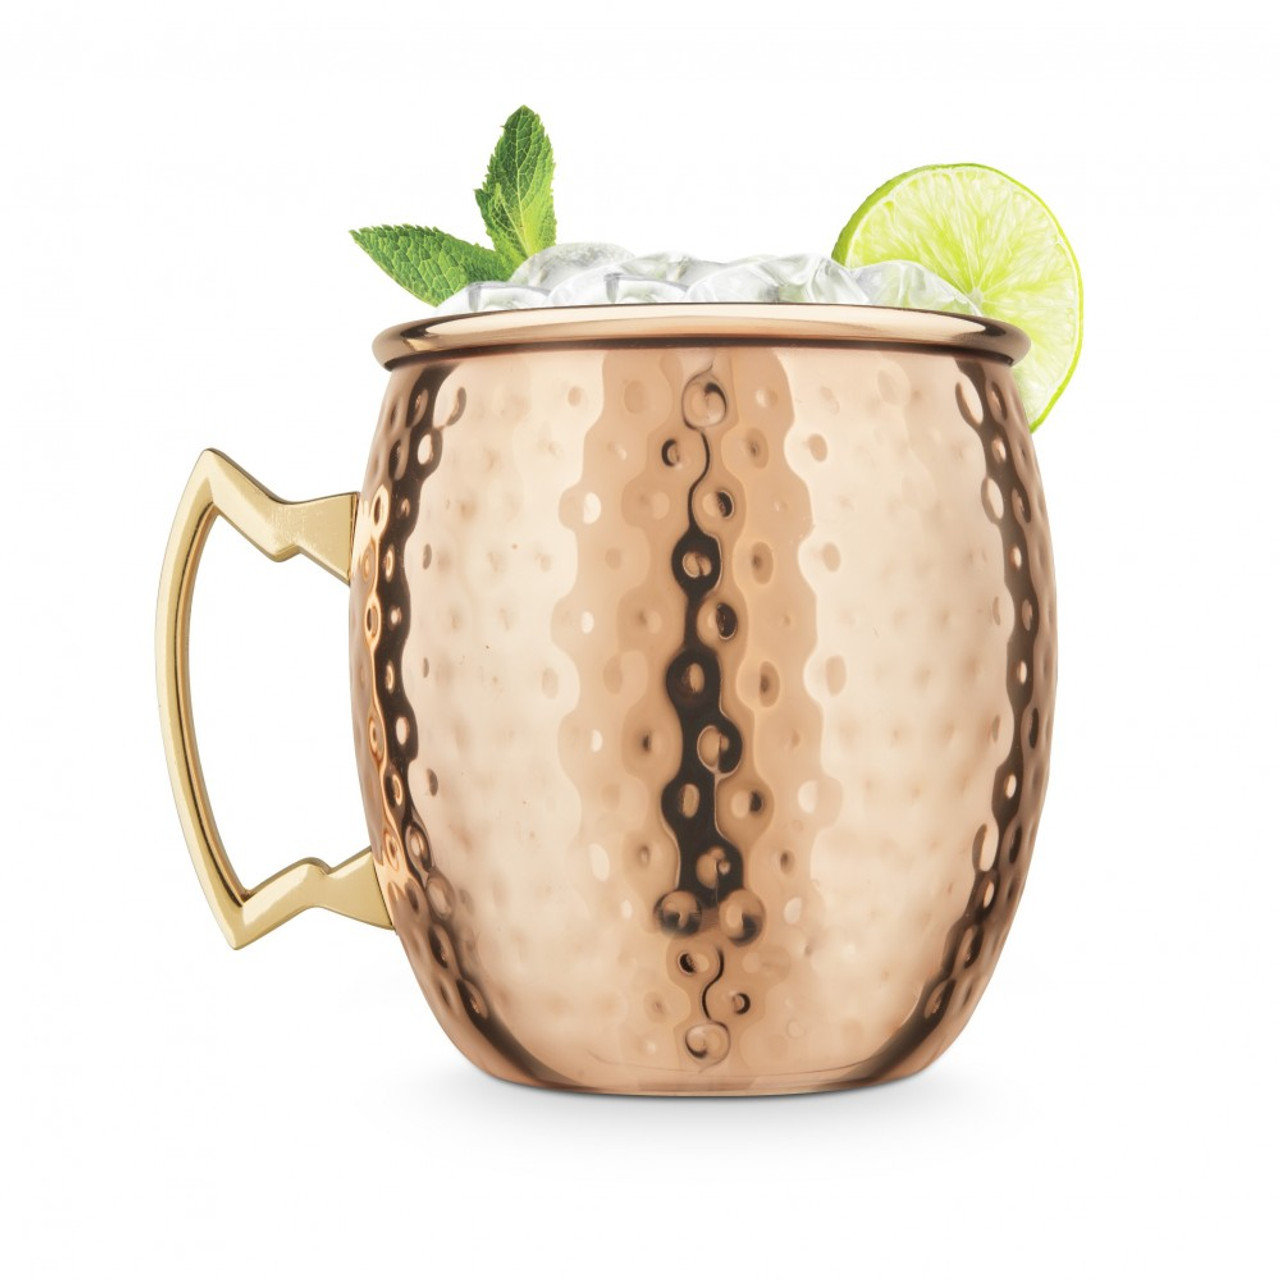 FINAL TOUCH HAMMERED MOSCOW MULE